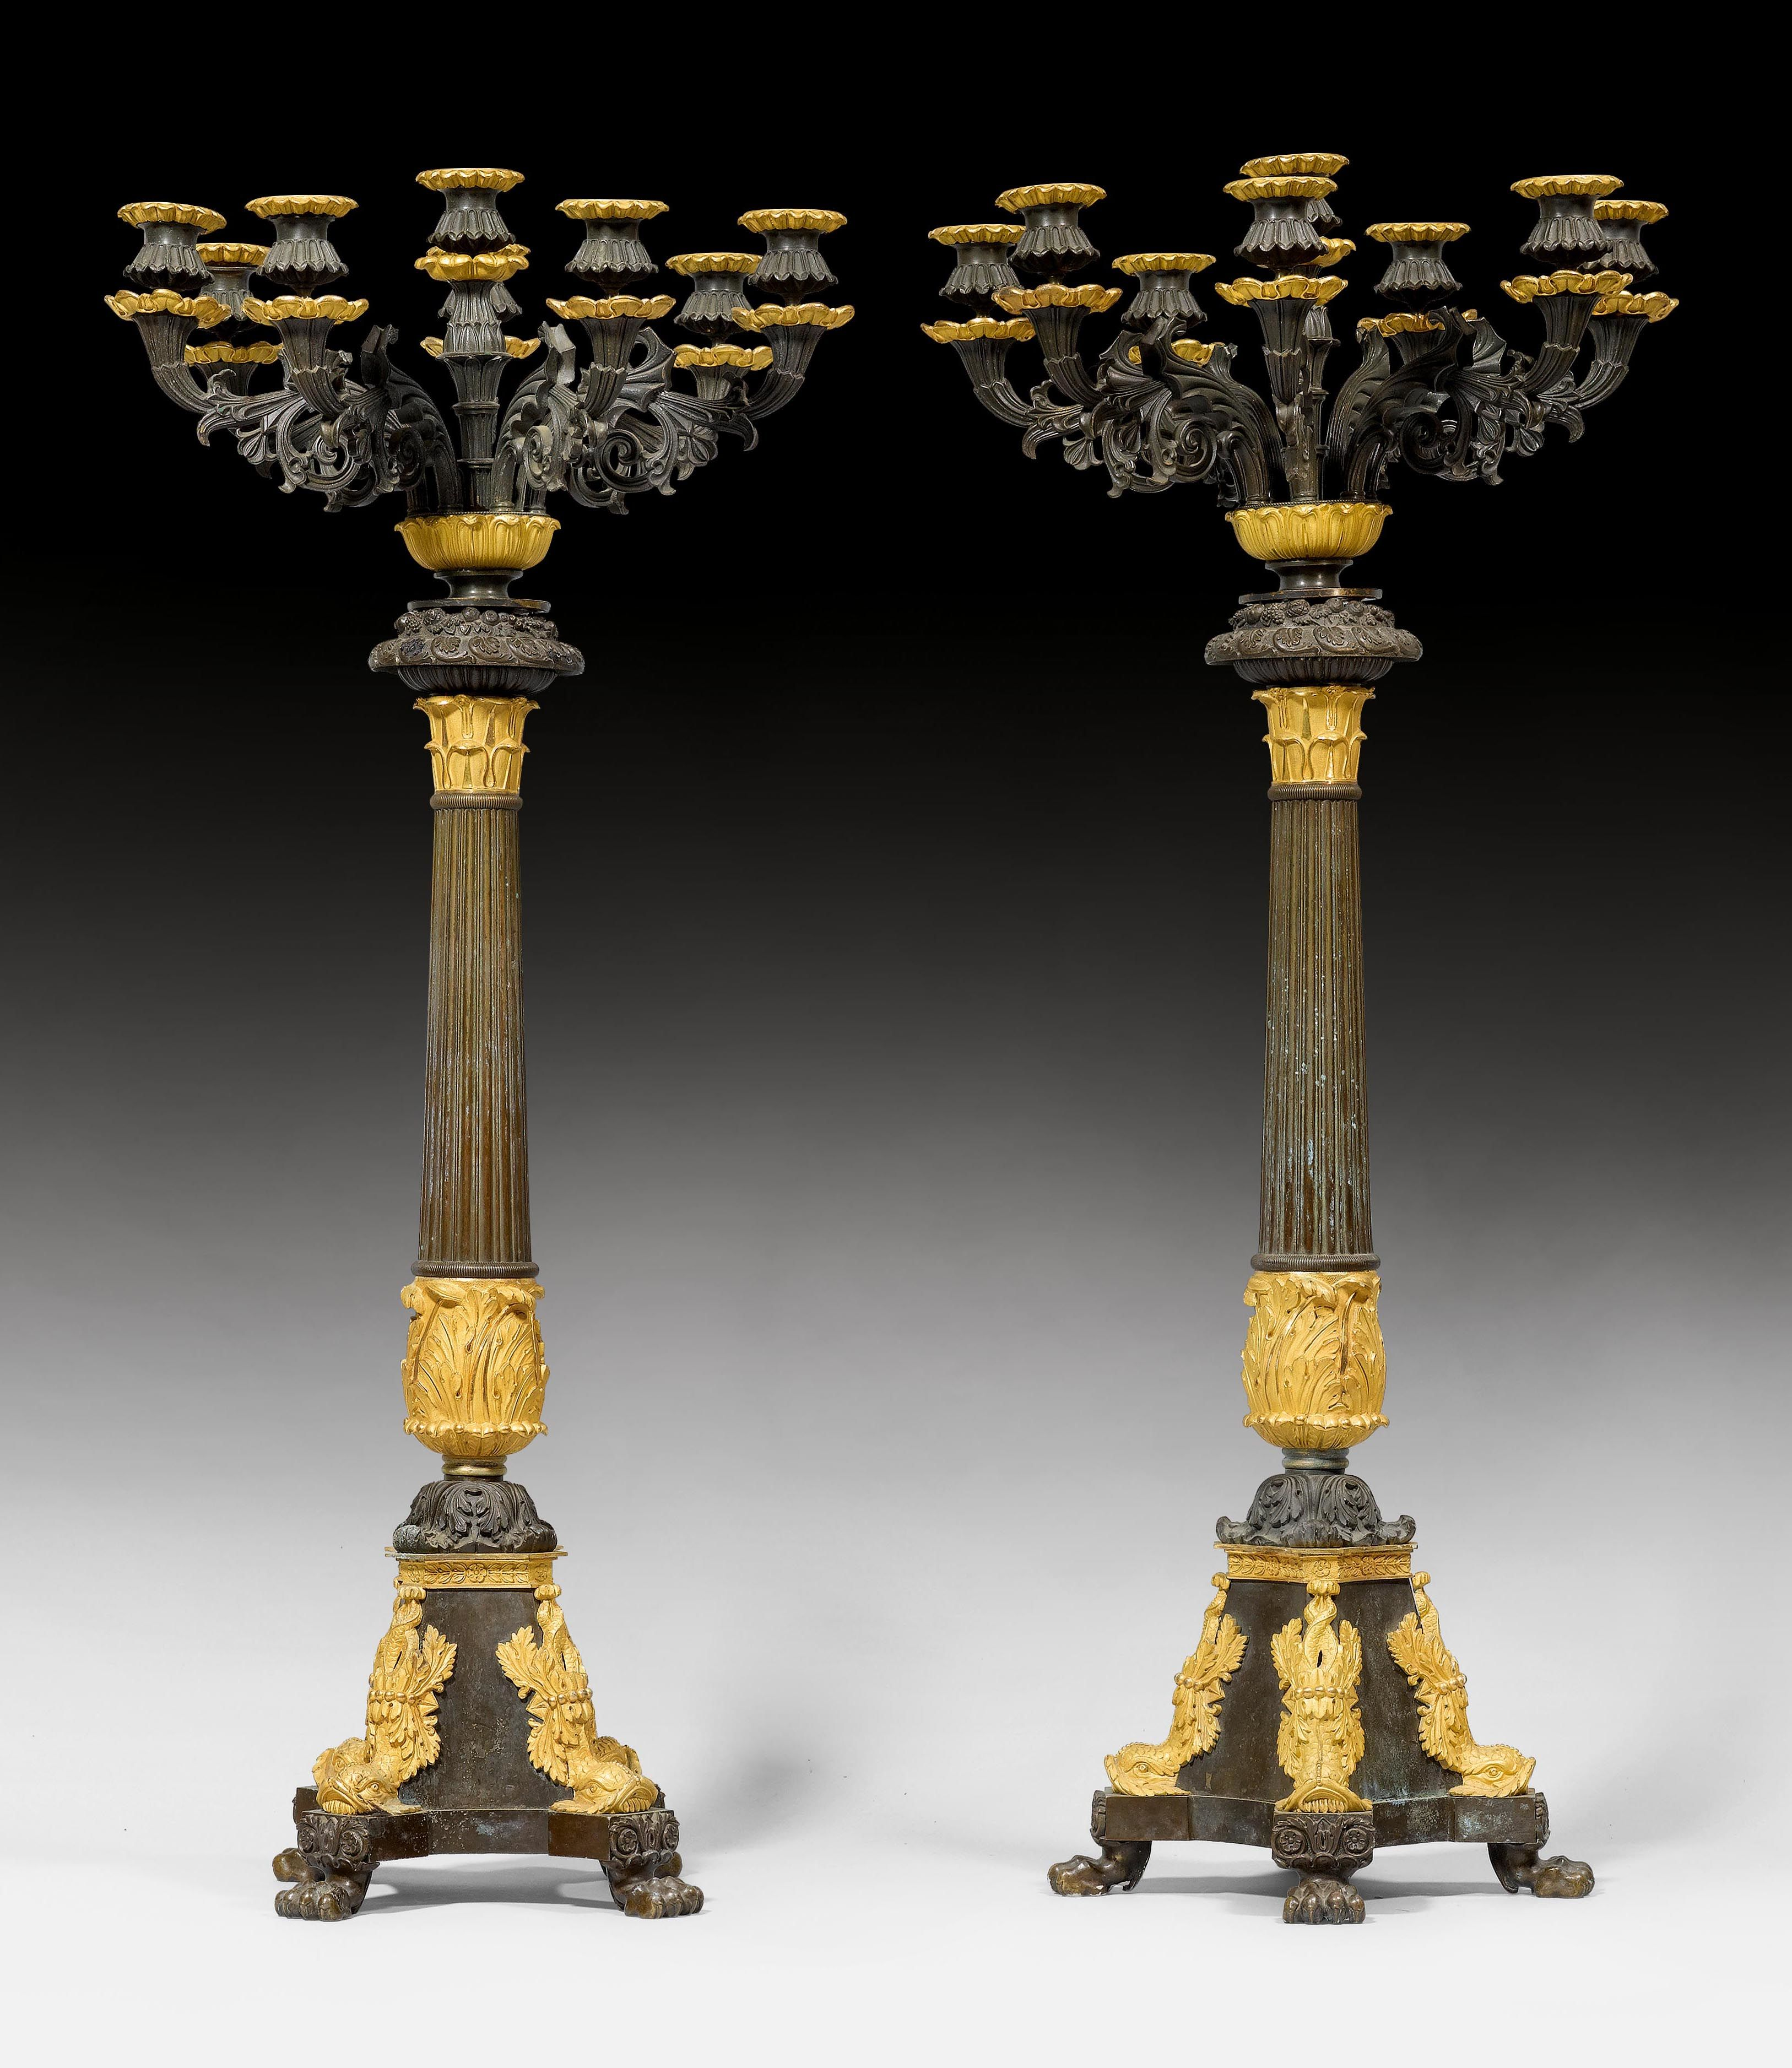 PAIR OF IMPORTANT CANDELABRAS,